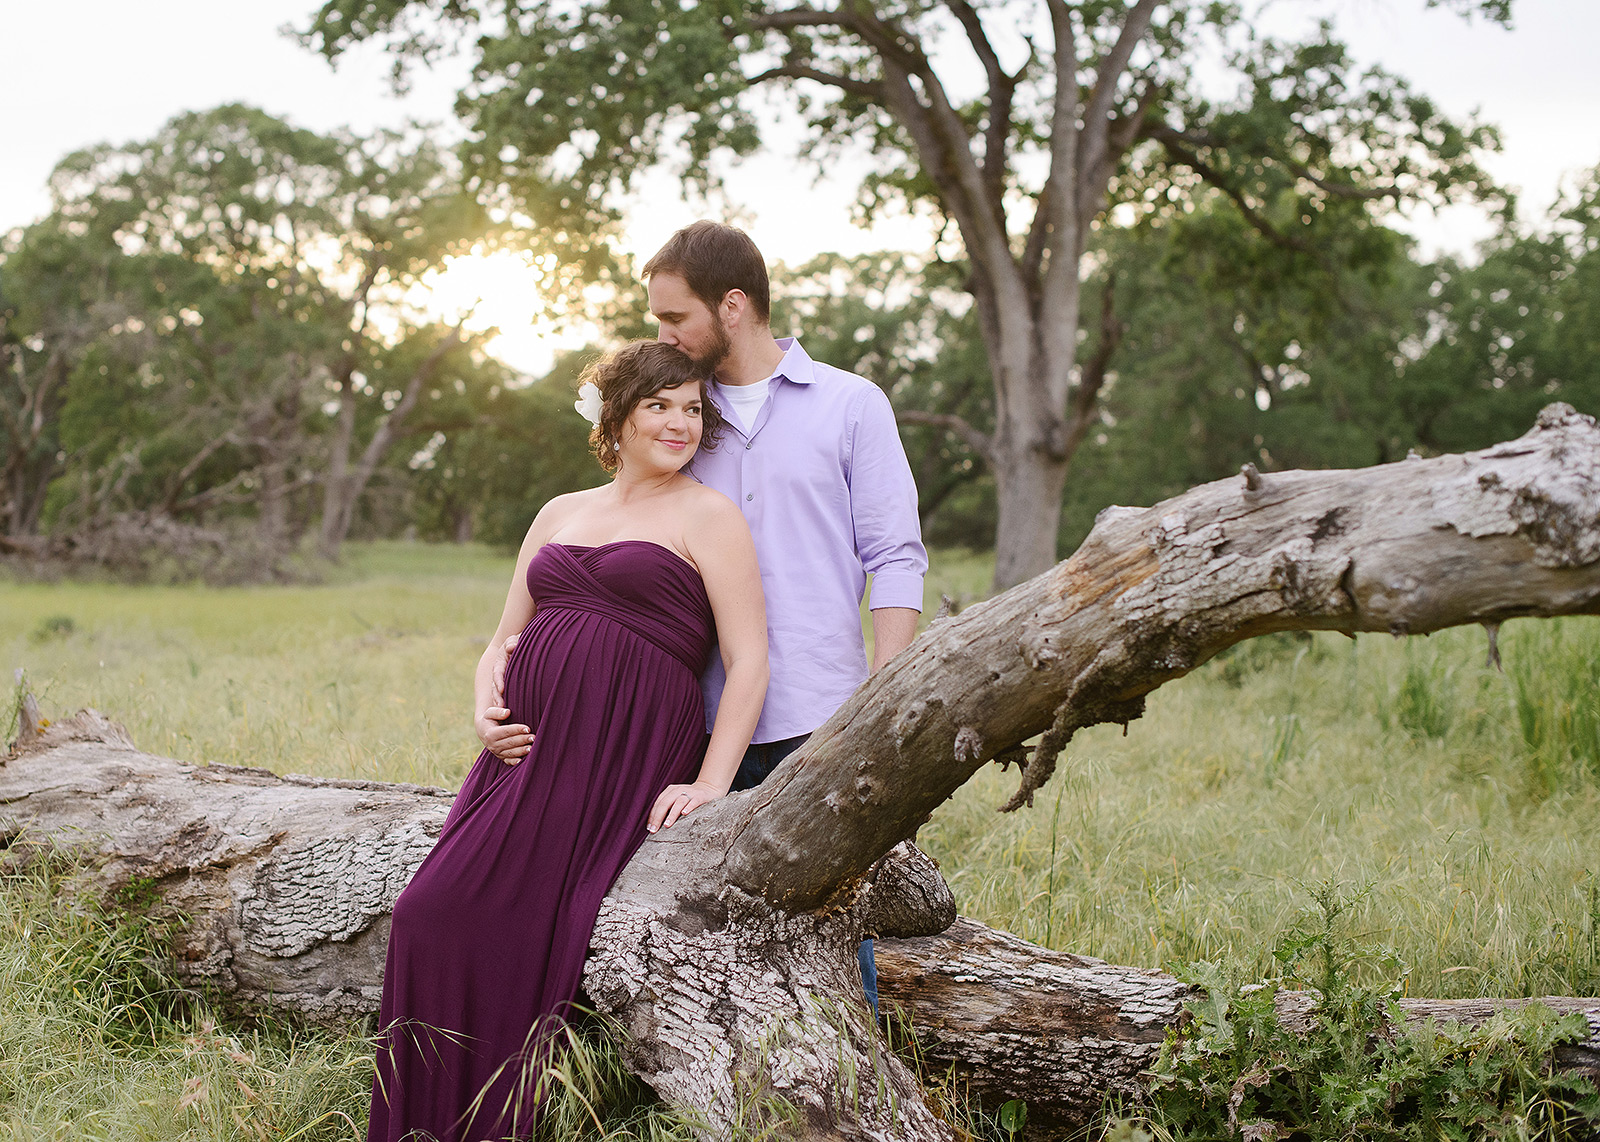 Pregnant couple sitting on fallen tree log outdoors in Folsom